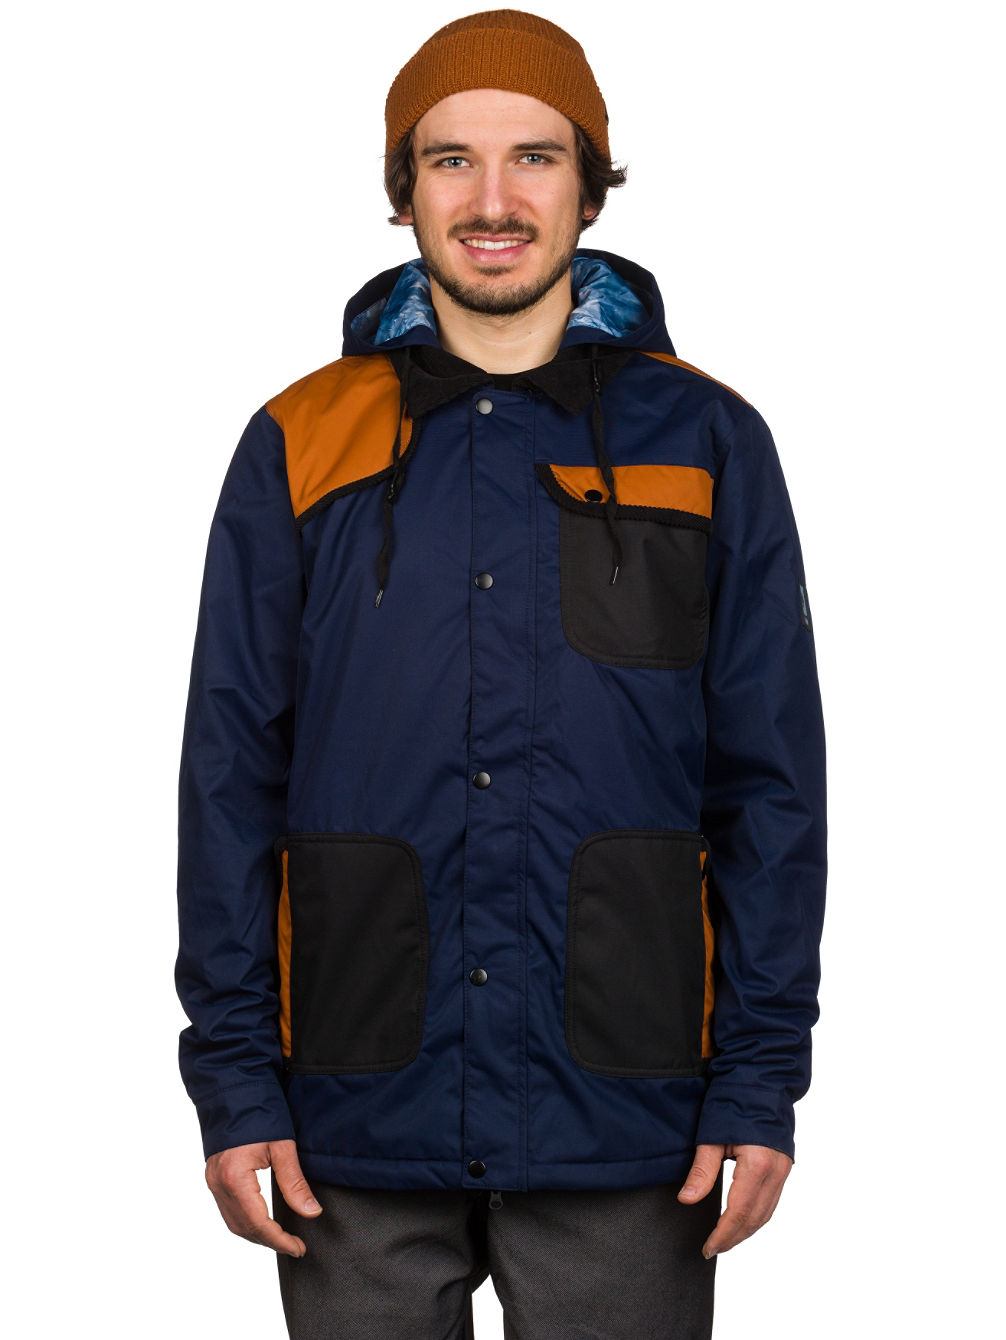 f7b1a9e8 Buy 686 Forest Bailey Cosmc Hppy Ins Jacket online at Blue Tomato